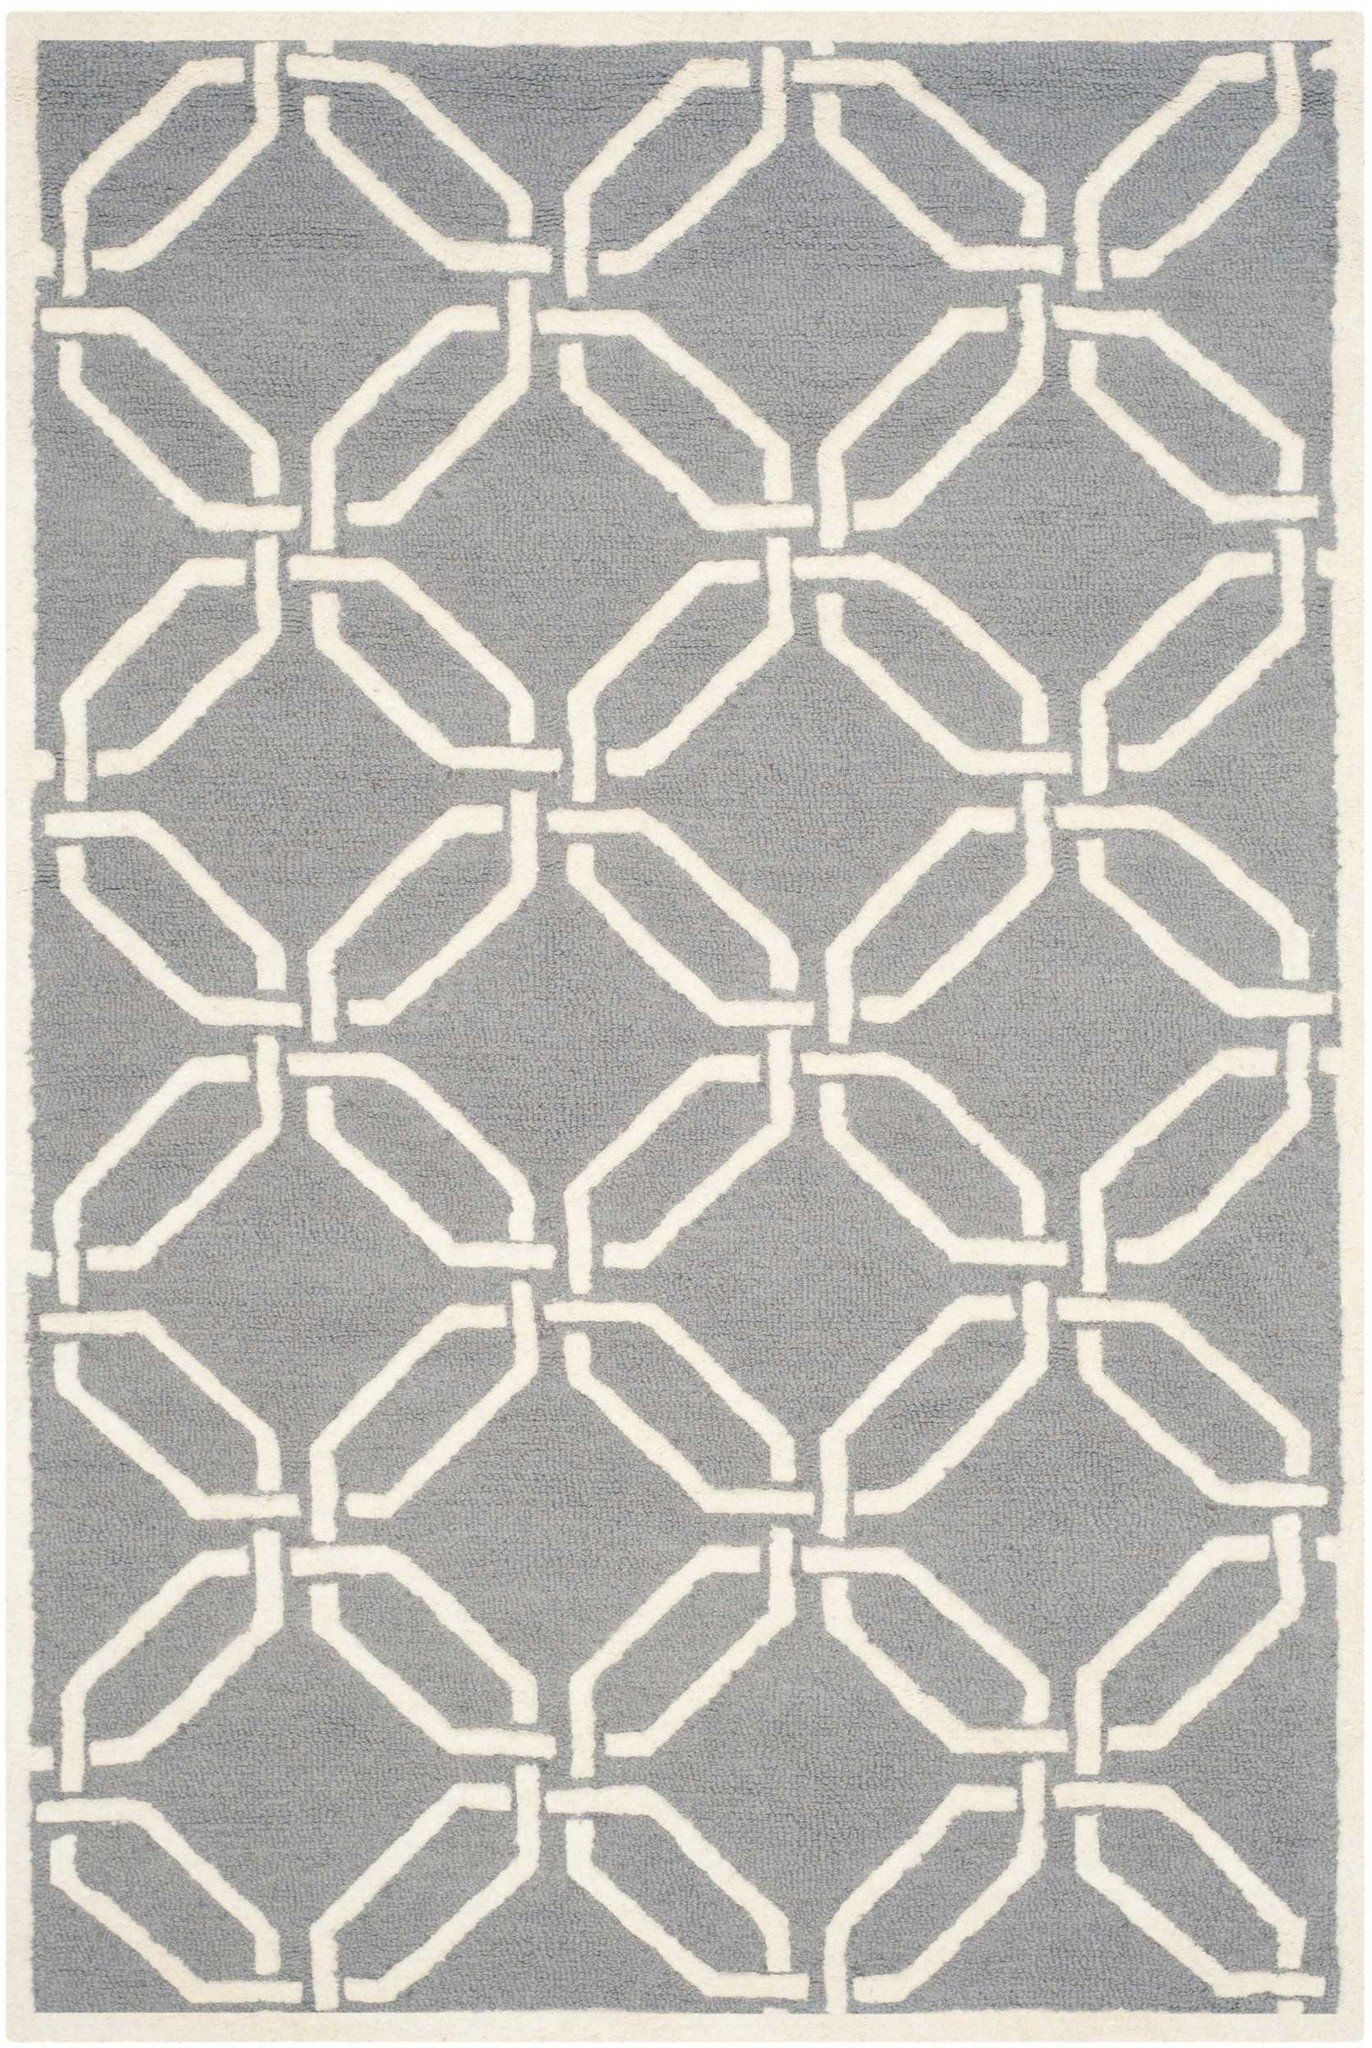 Safavieh Cambridge Cam311 Area Rug Hand Tufted Rugs Rug Texture